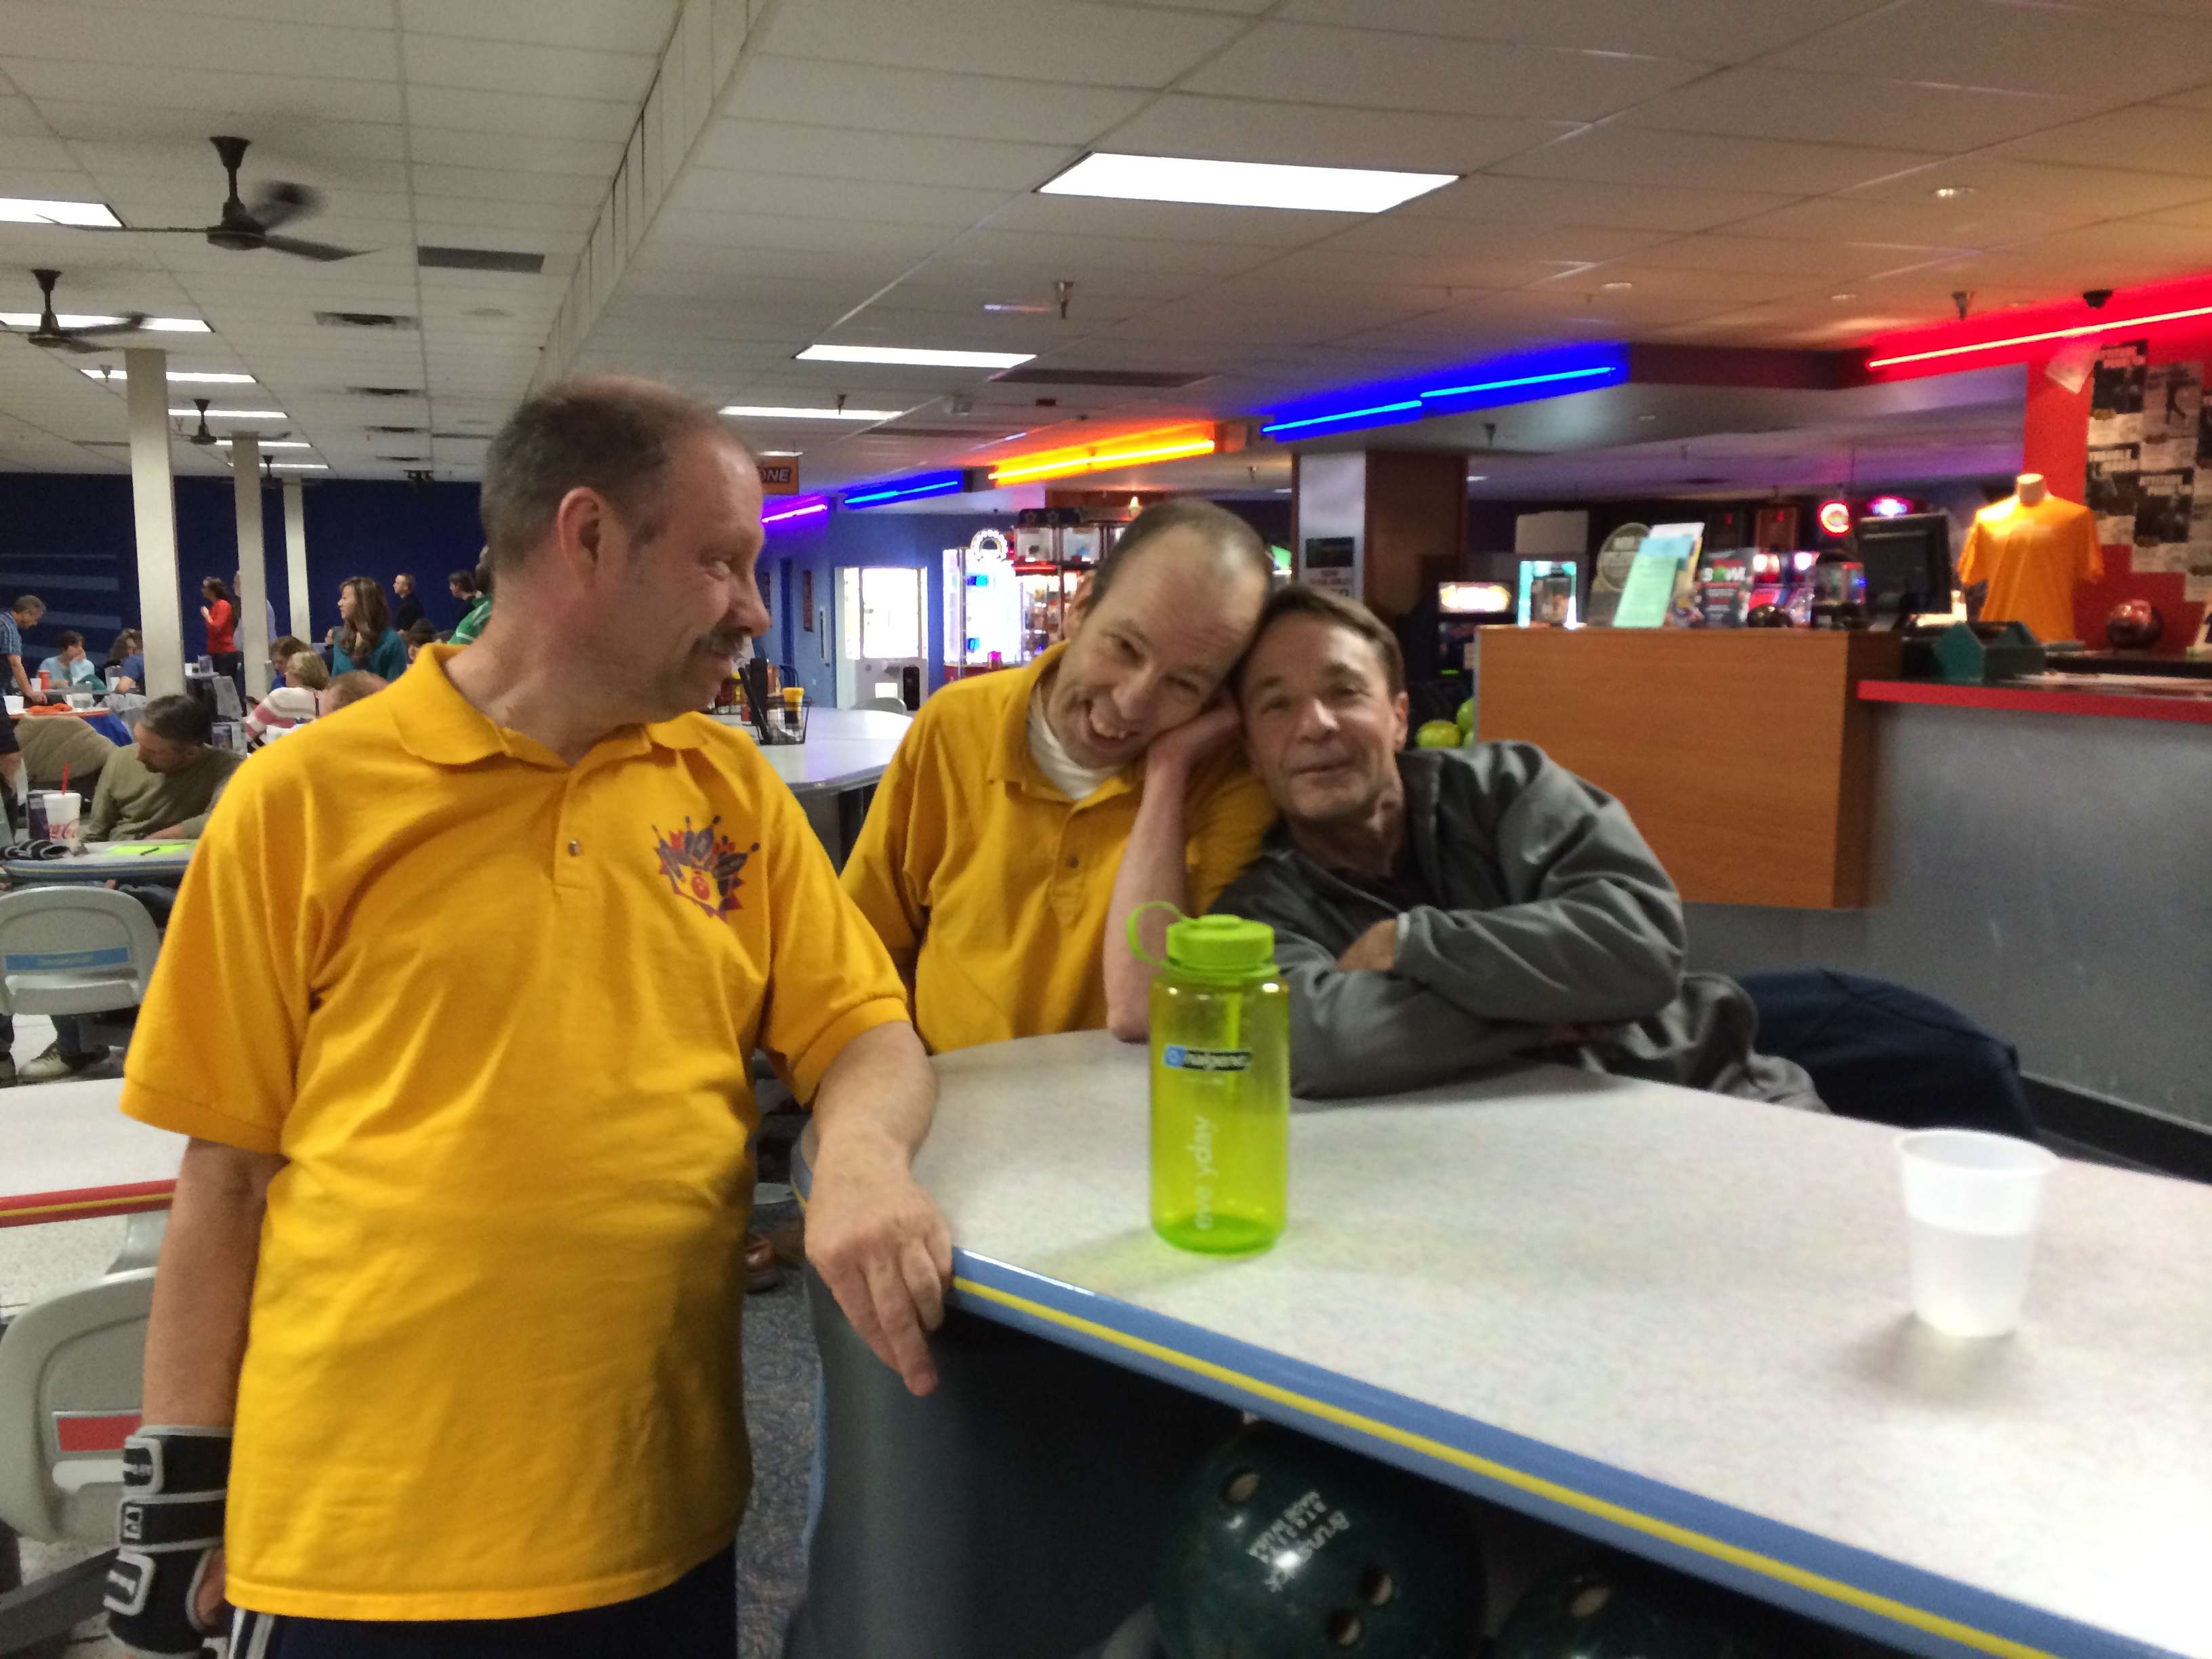 Scott at Bowling alley